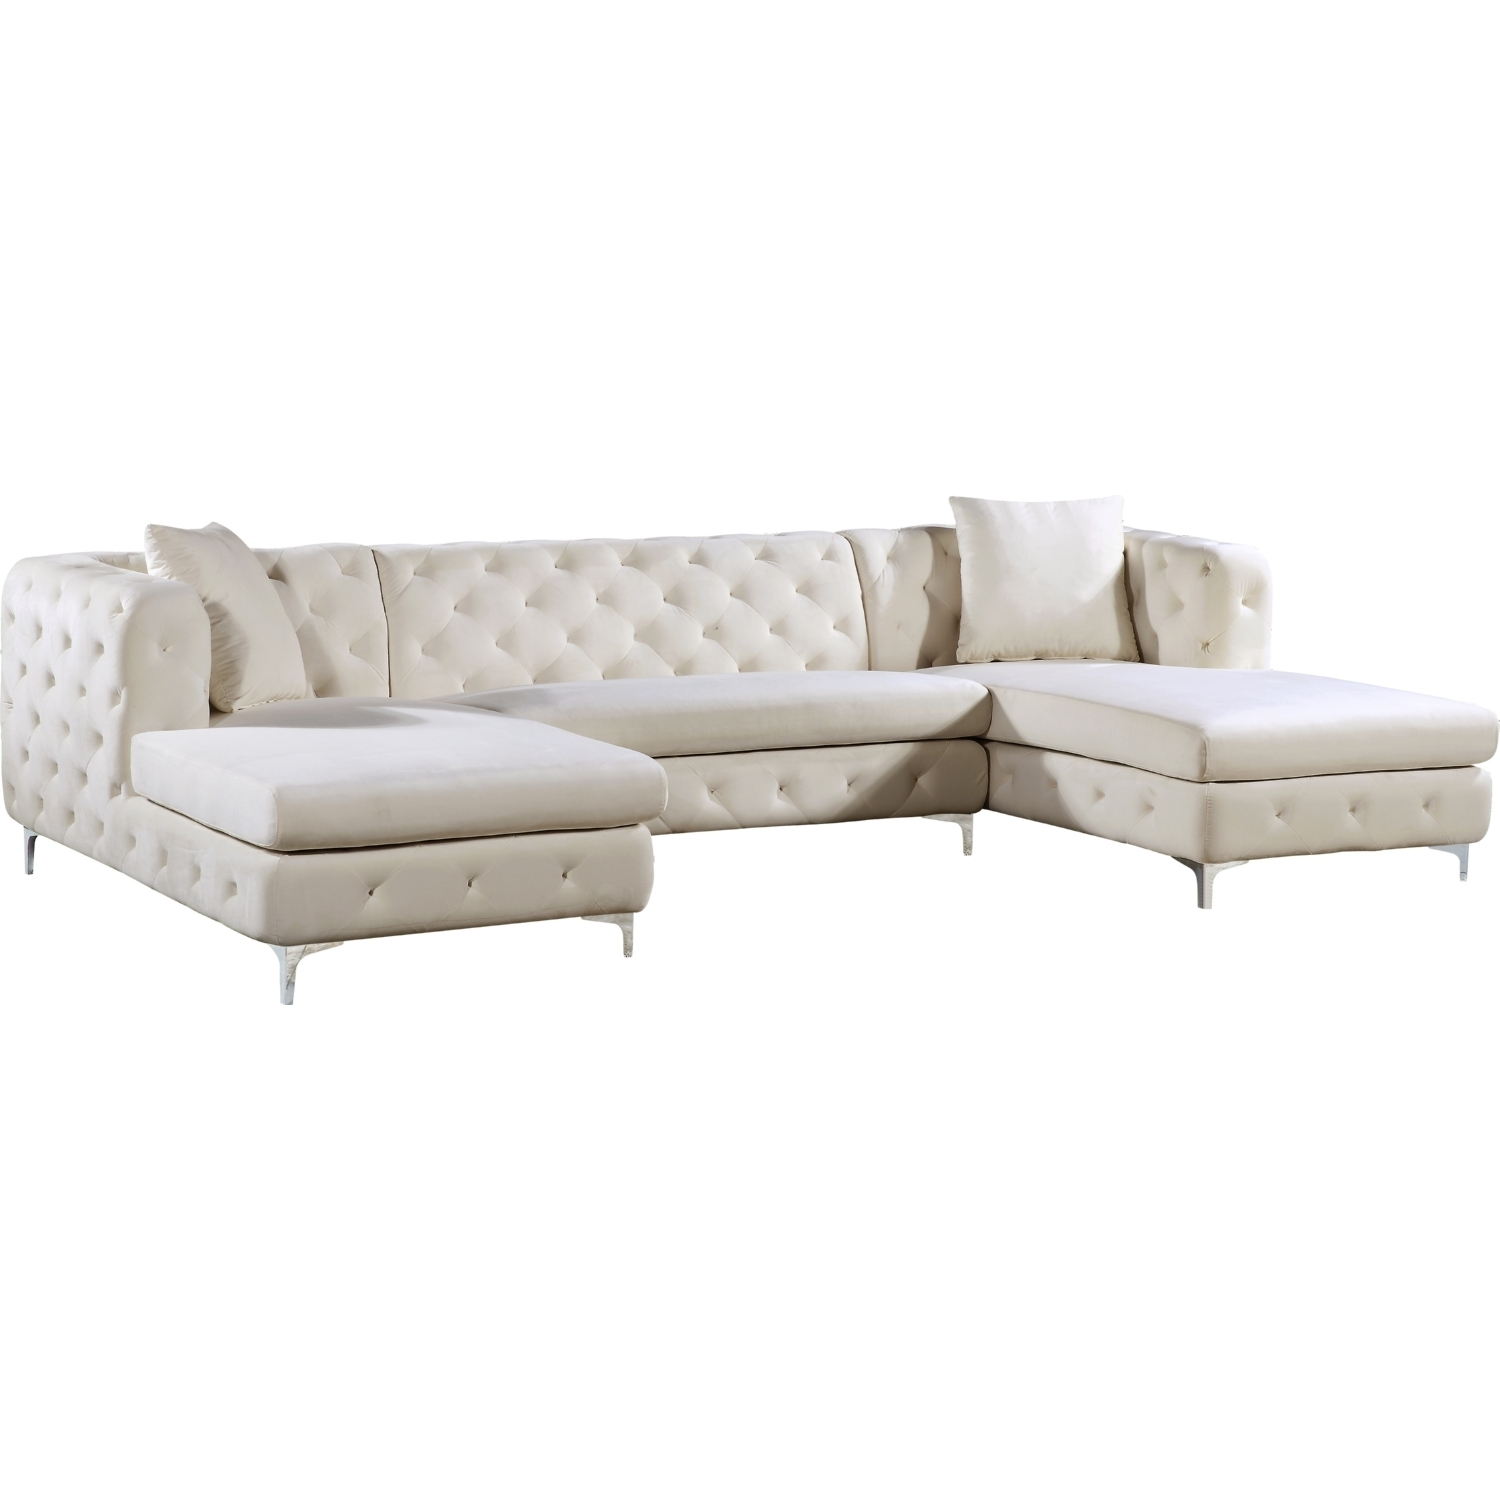 Sectional Sofa : Cheap L Couches Reversible Sectional Couch Grey Inside Tufted Sectional Sofas With Chaise (View 5 of 10)